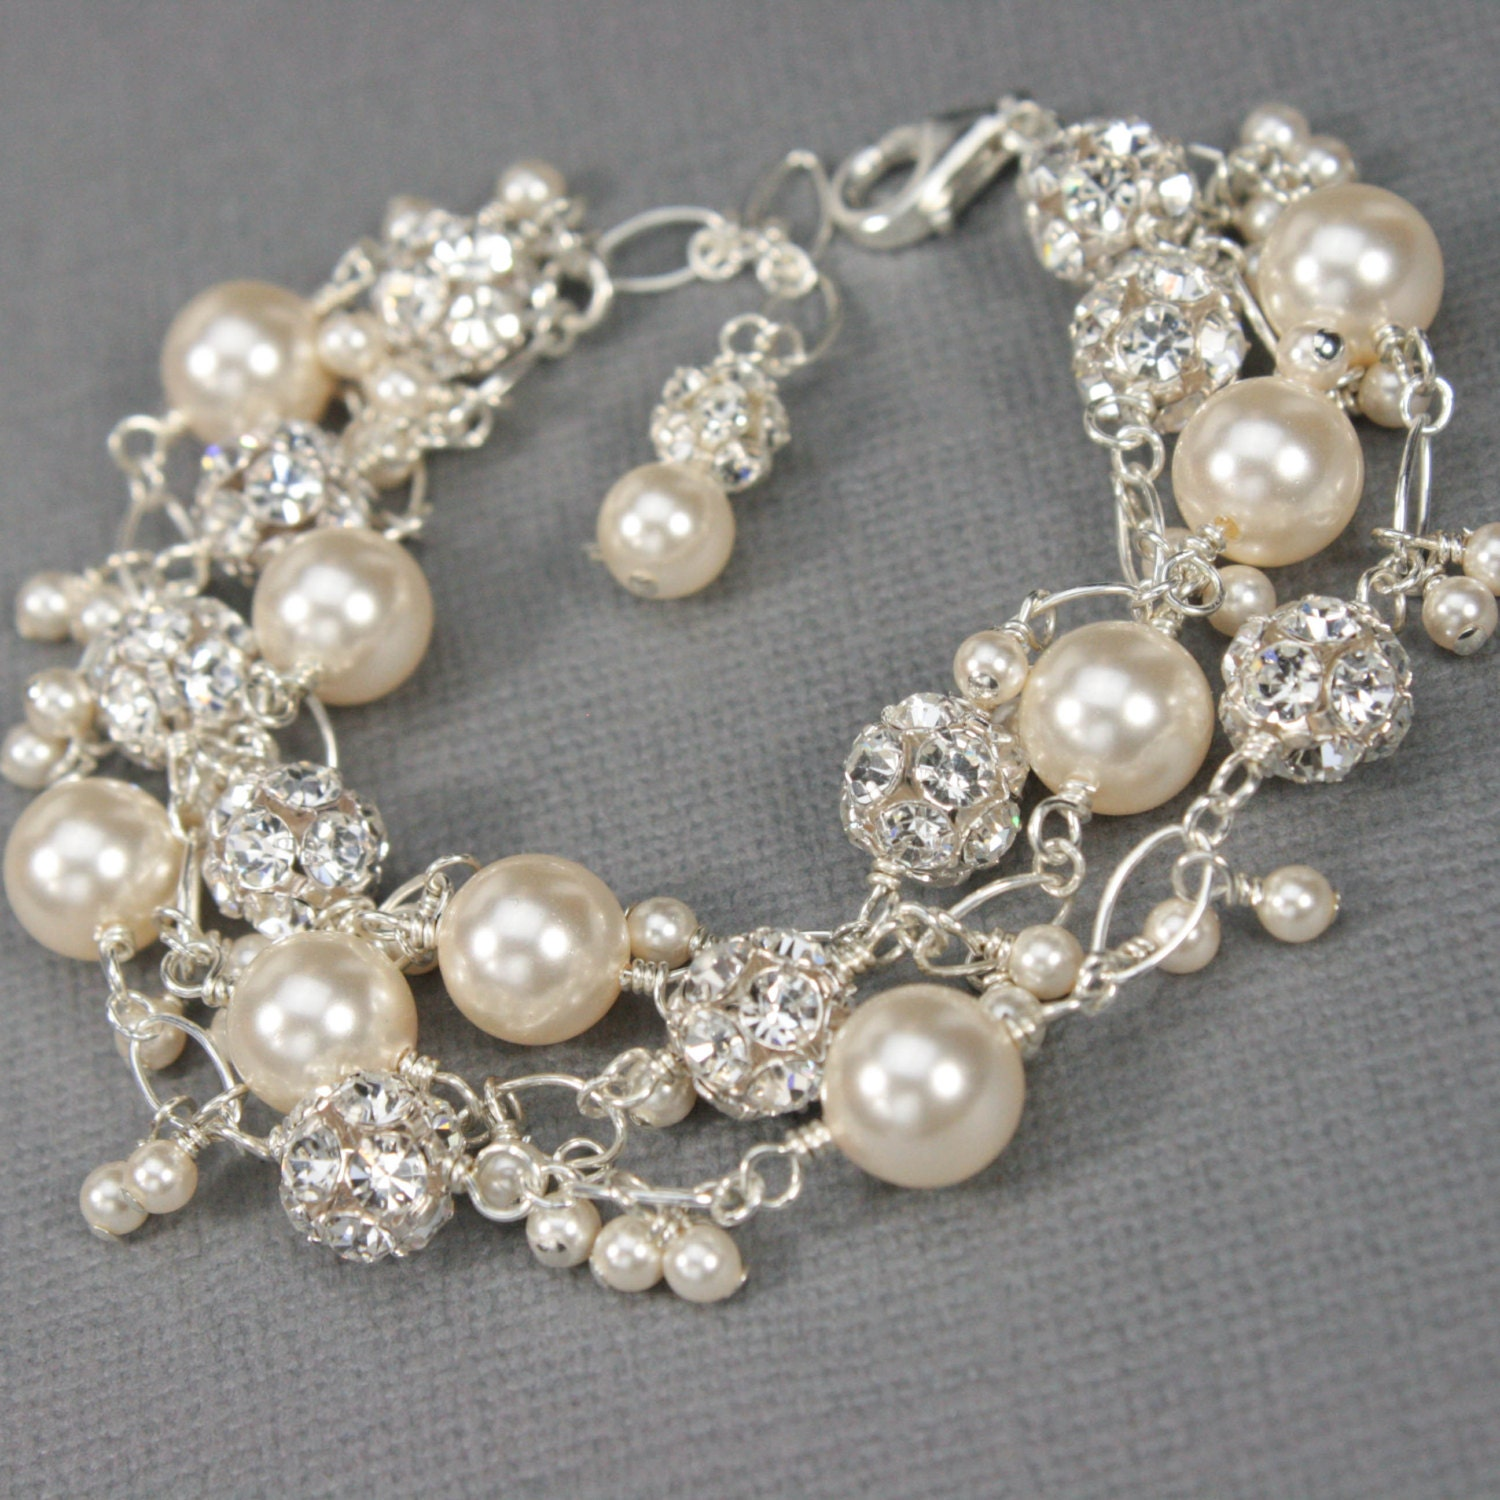 Pearl and Crystal Charm Bracelet Unique Bridal Jewelry